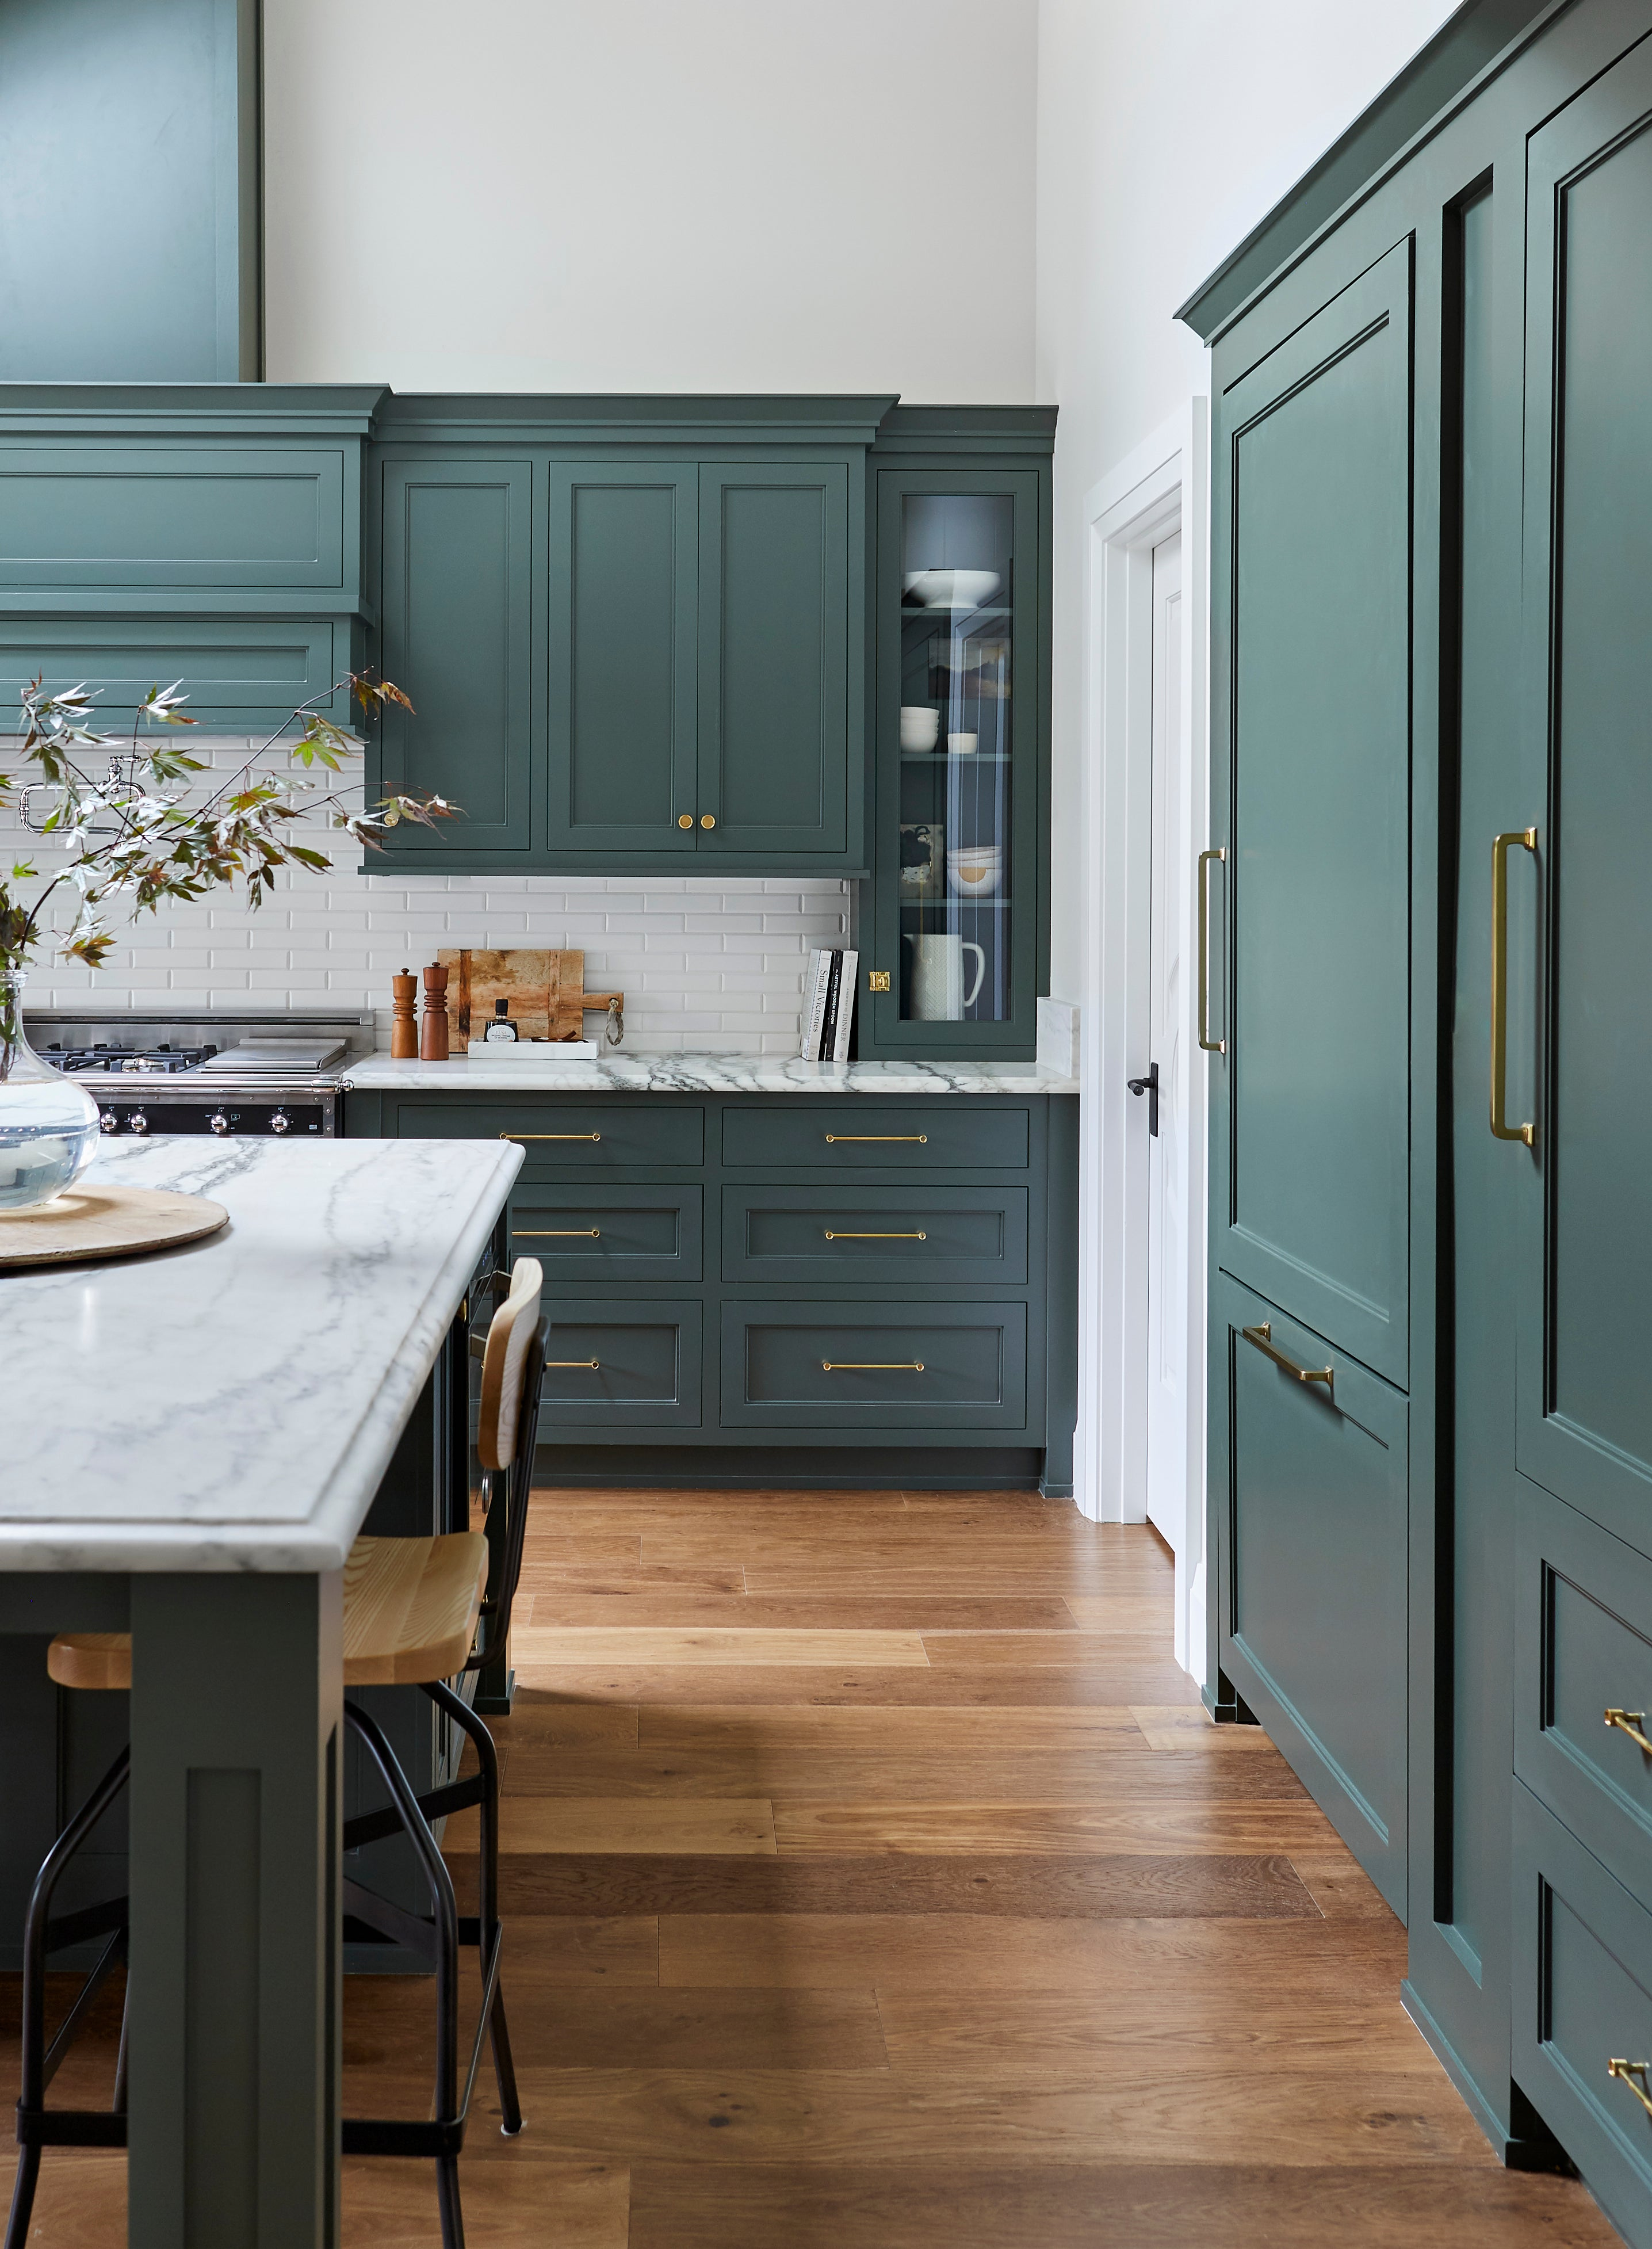 gray green kitchen cabinets with gray marble counters